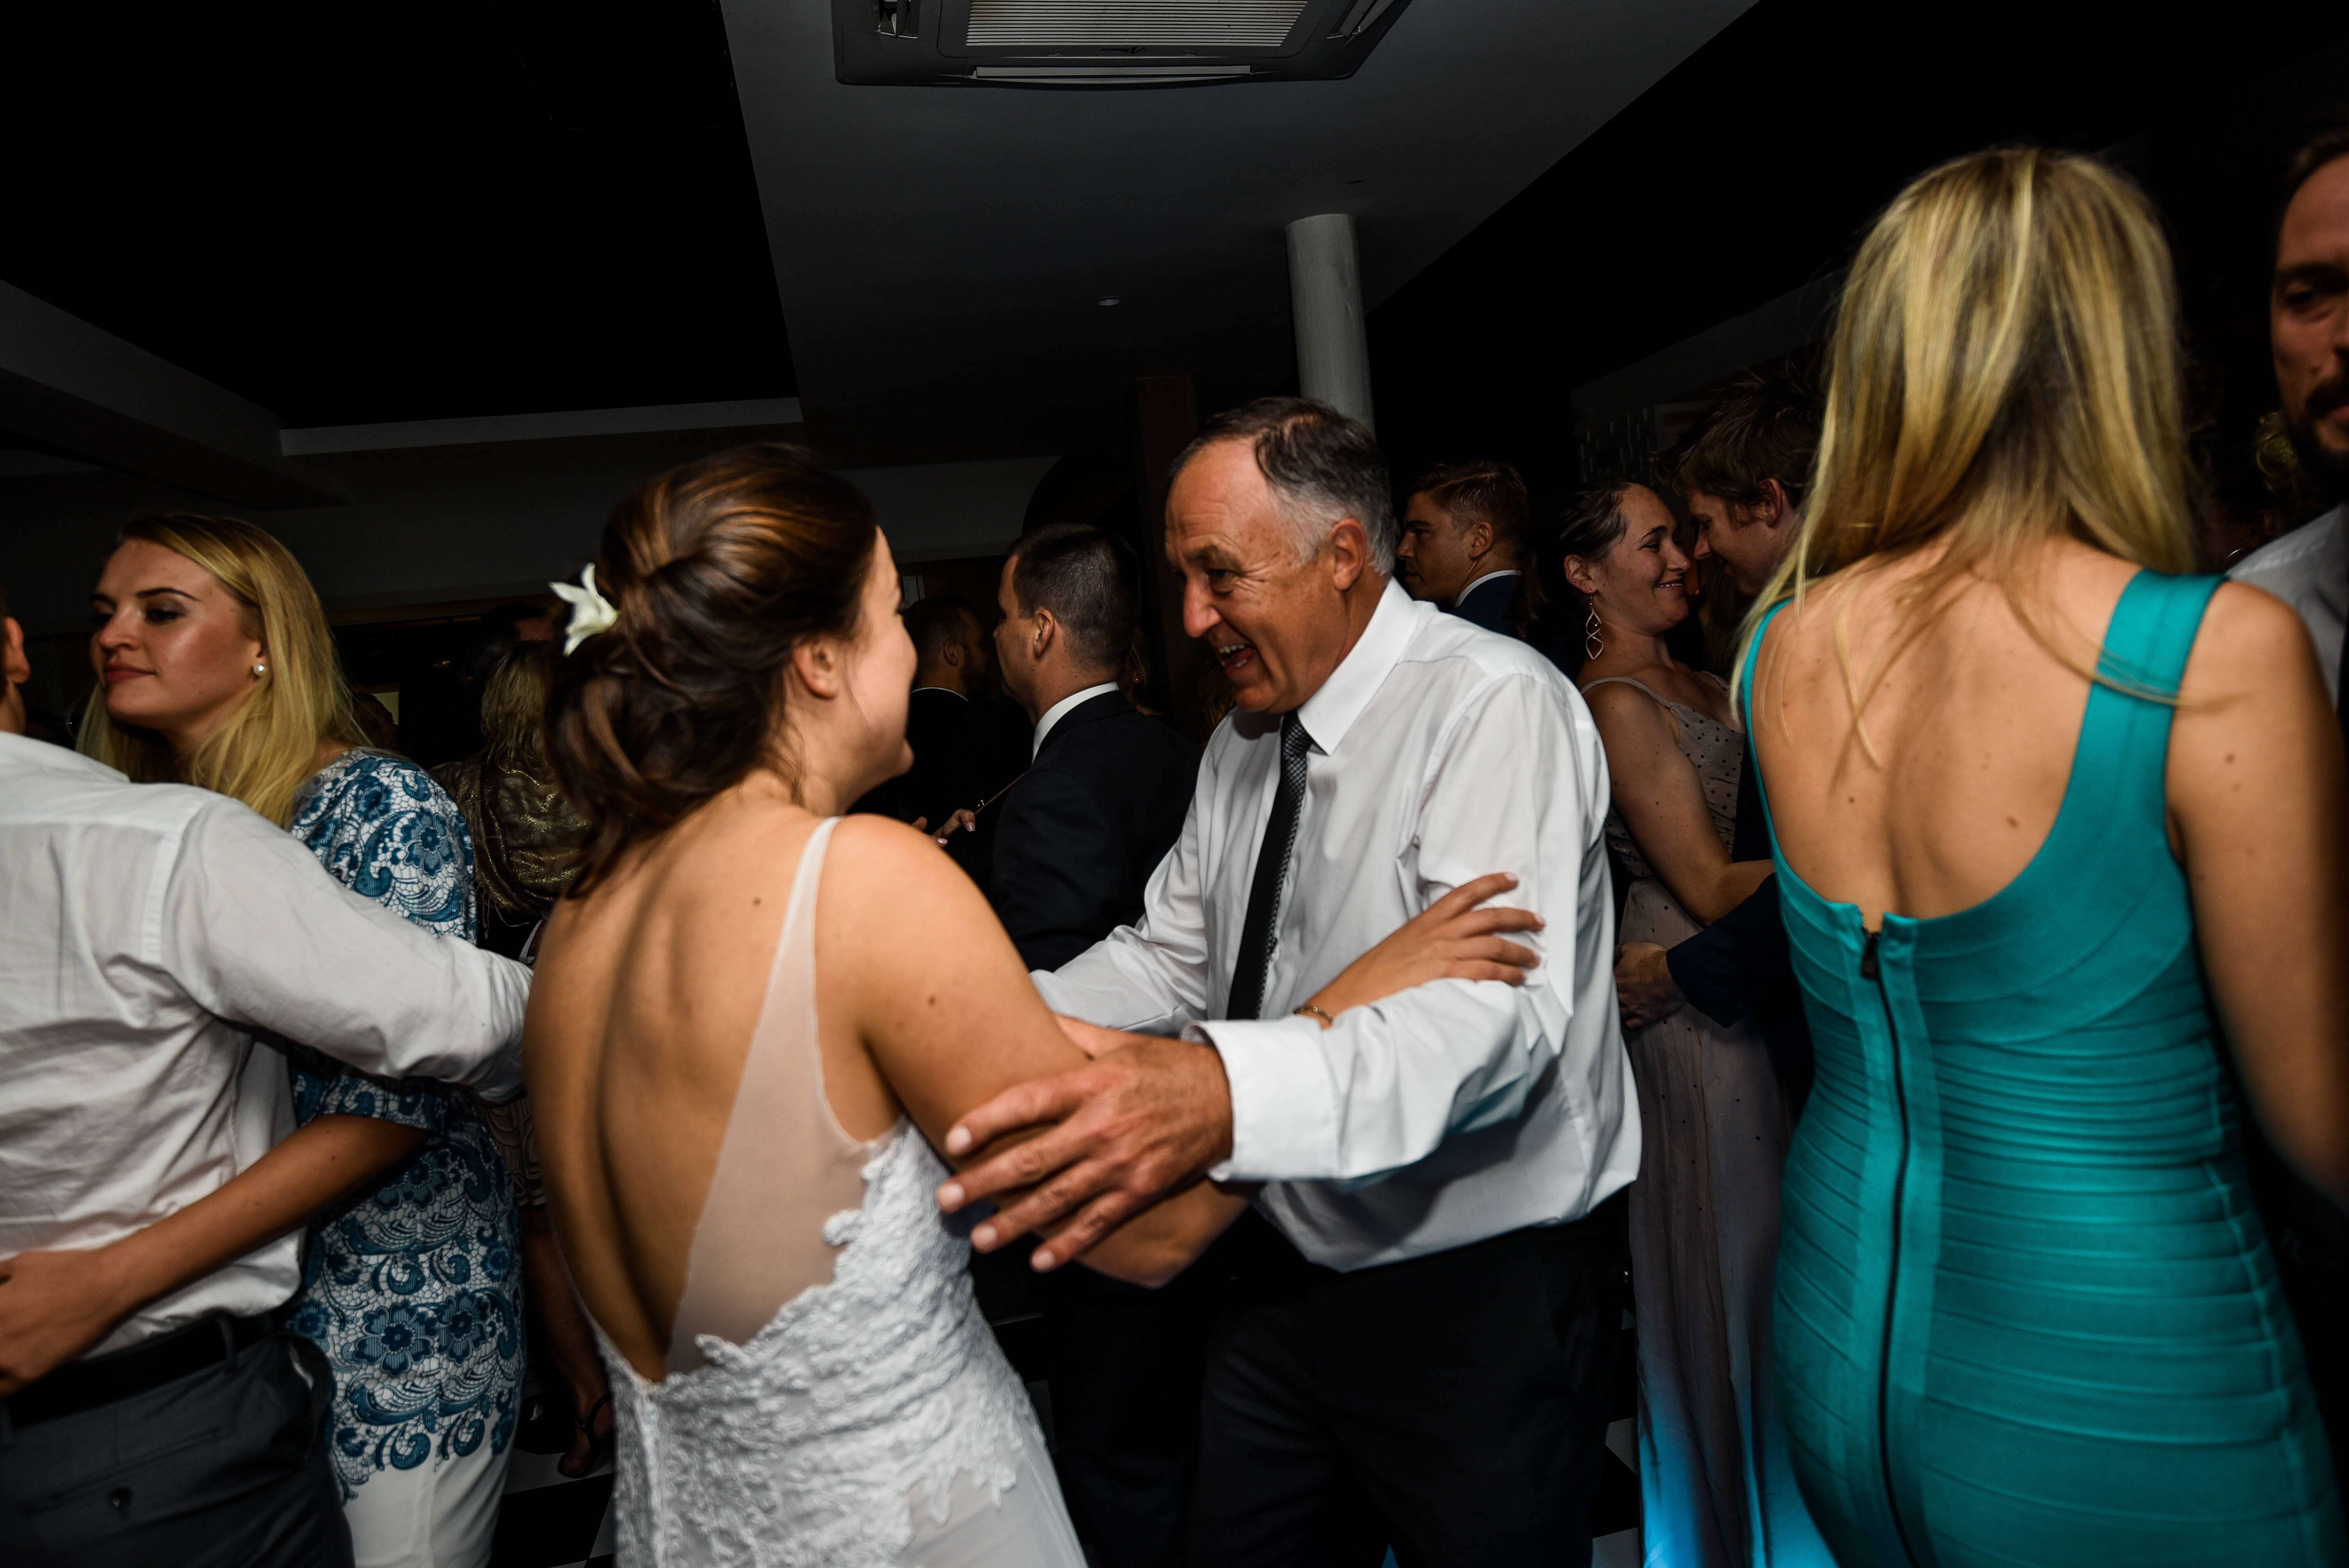 A father and her daughter dancing the night away to the best DJ in the world.